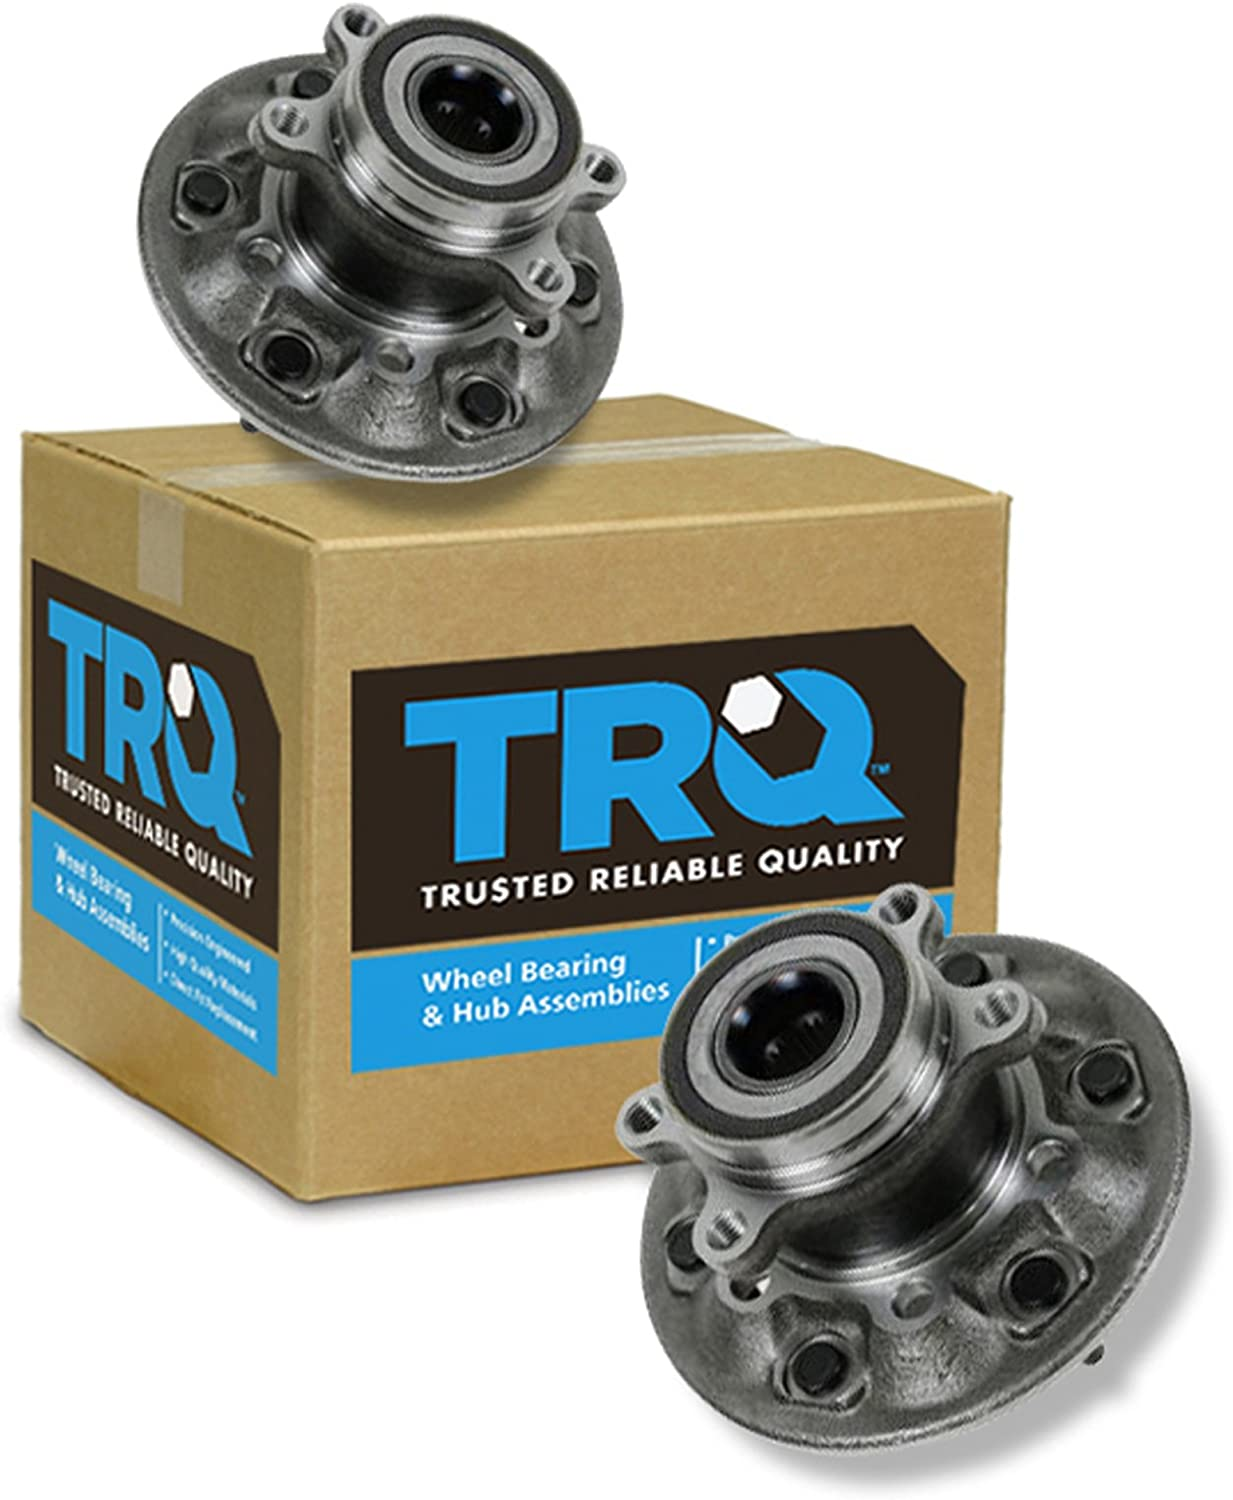 Front Left Wheel Bearing and Hub Assembly for 2008 GMC Canyon With Two Years Warranty Package Includes One Bearing